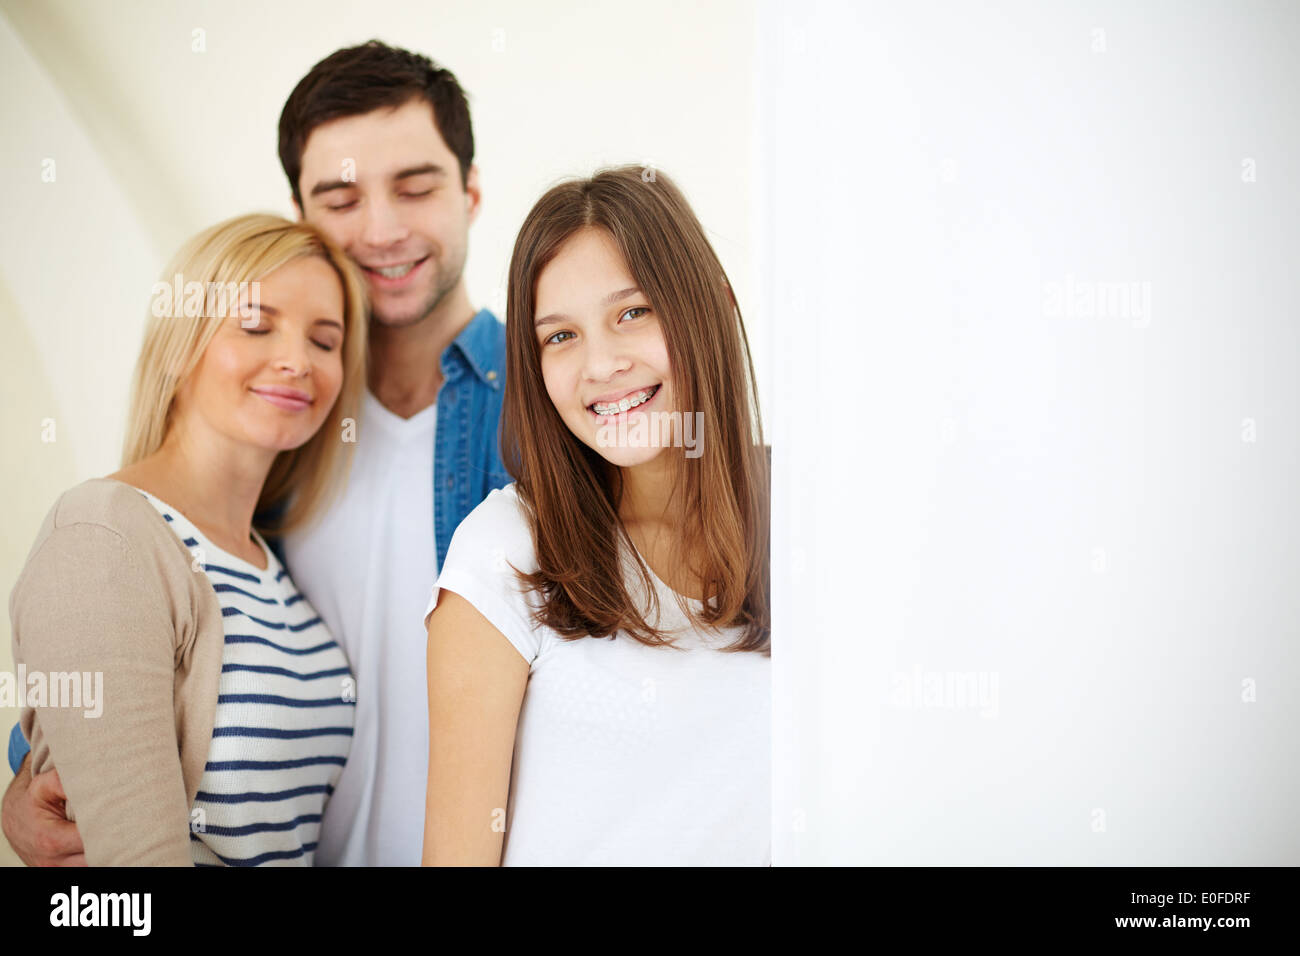 Portrait of happy family of three in isolation - Stock Image